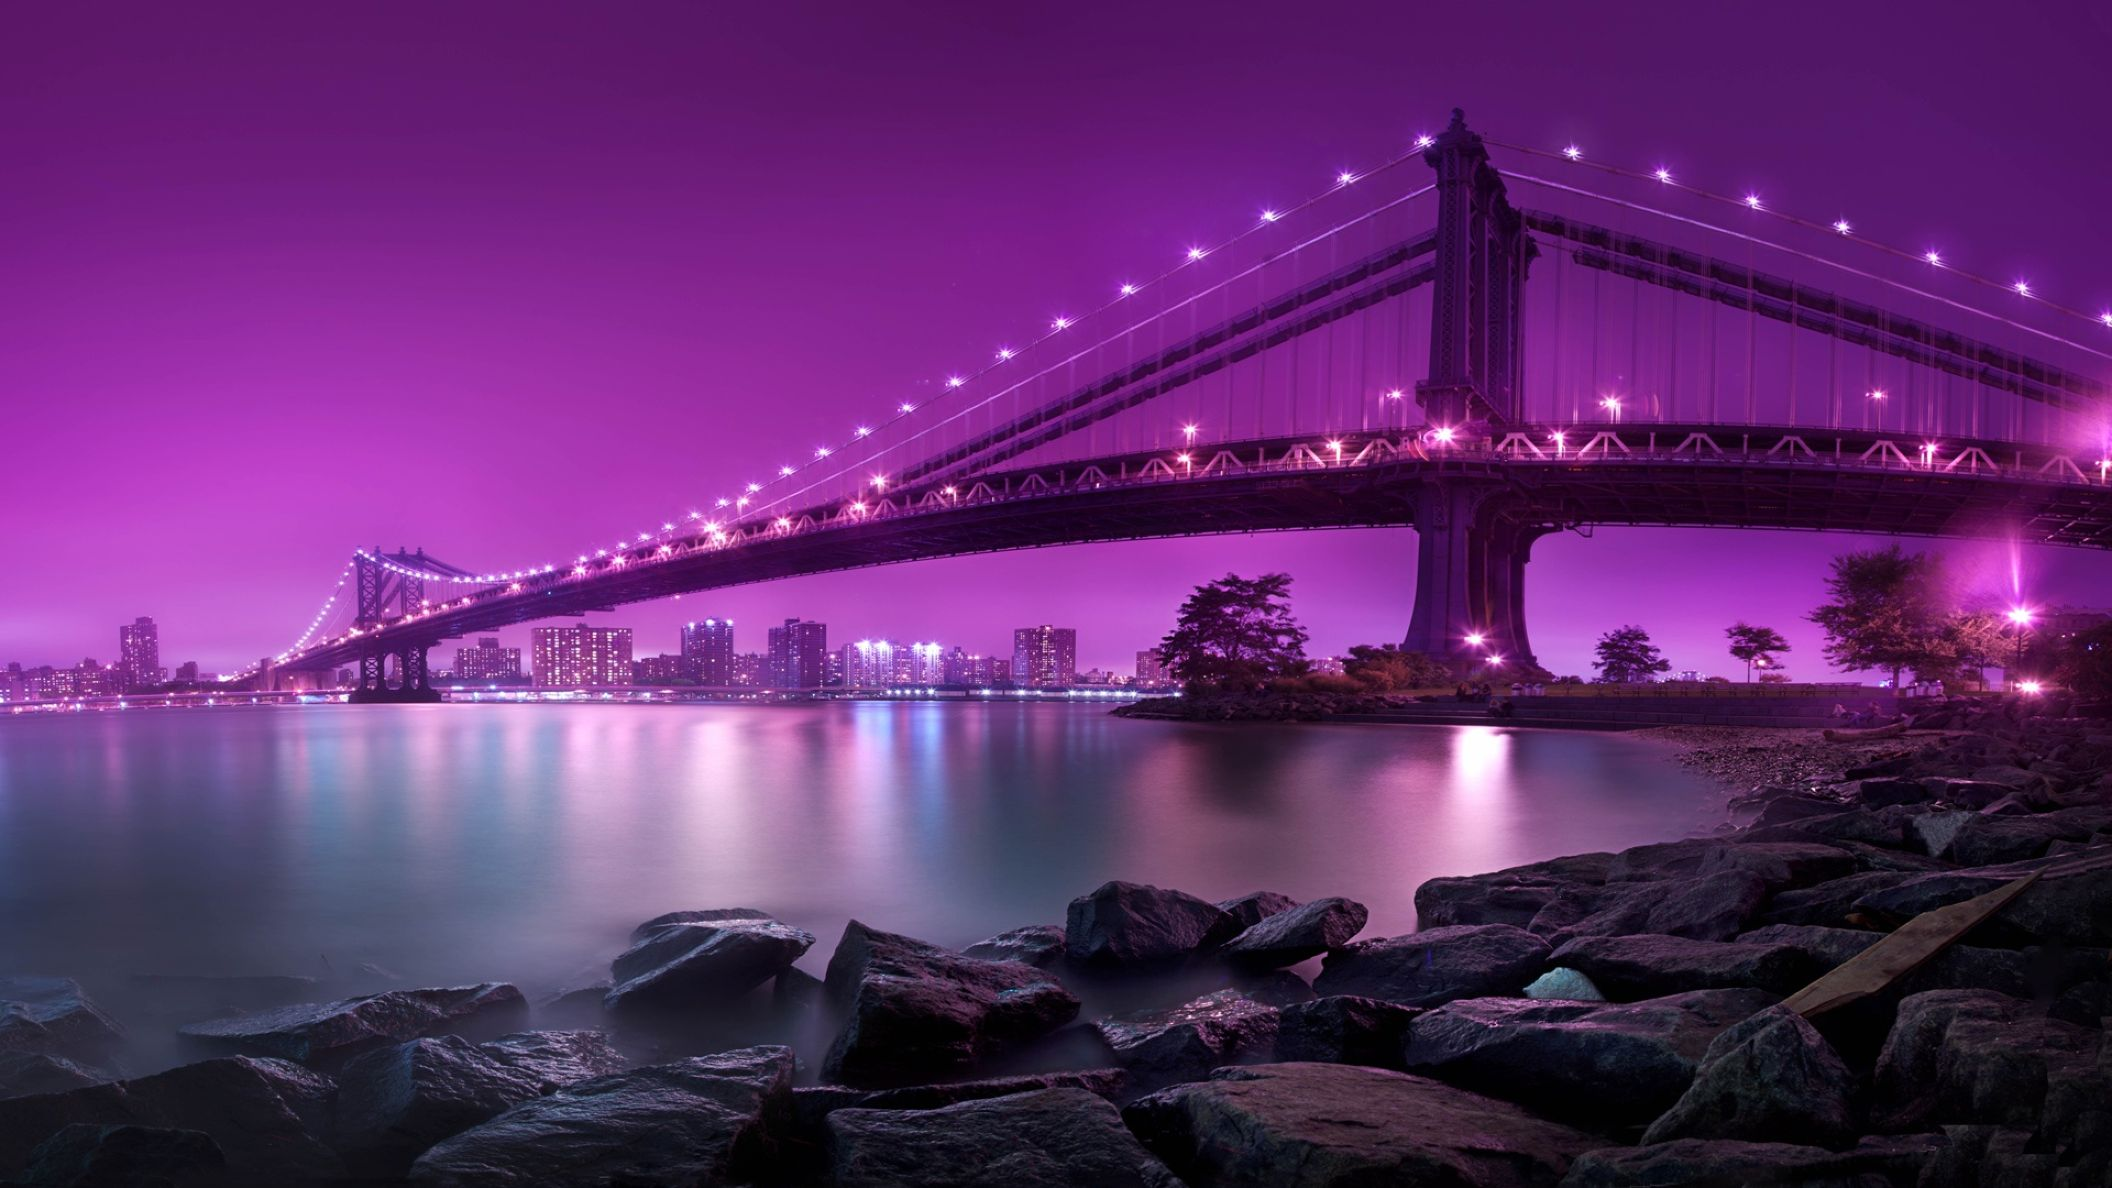 manhattan bridge london city for pc wallpaper: desktop hd wallpaper